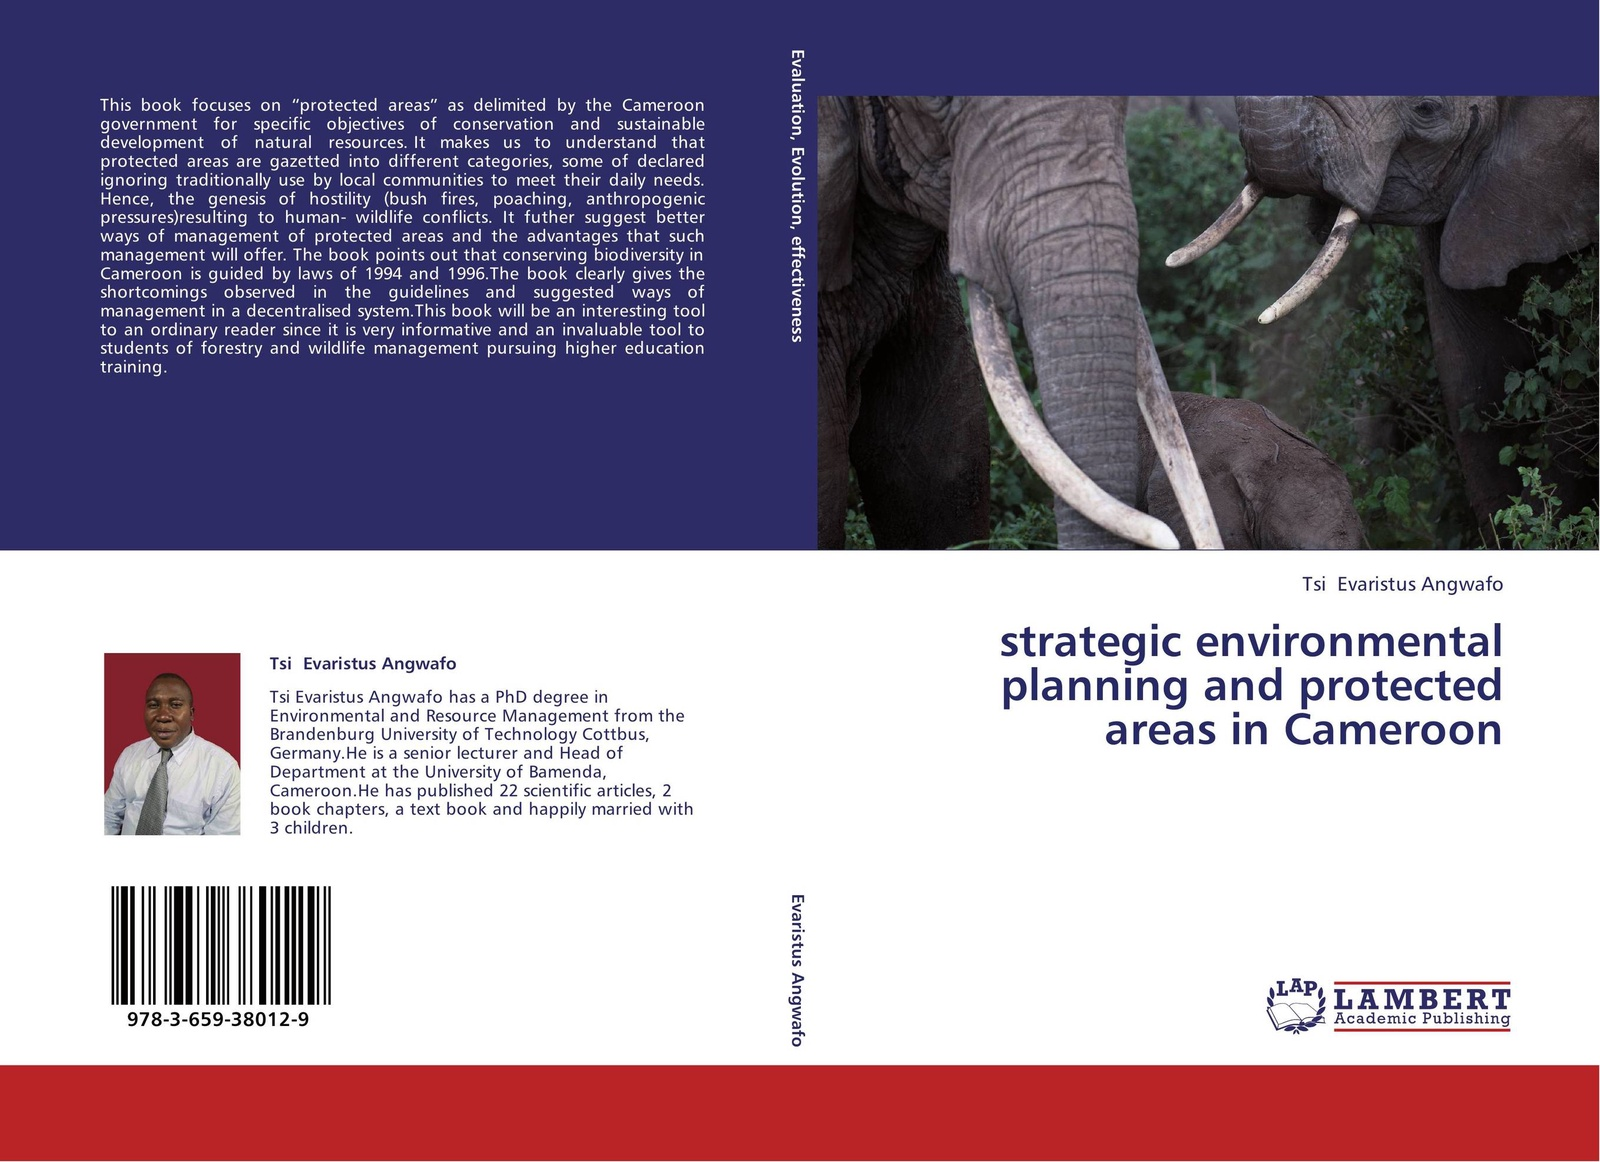 Tsi Evaristus Angwafo strategic environmental planning and protected areas in Cameroon